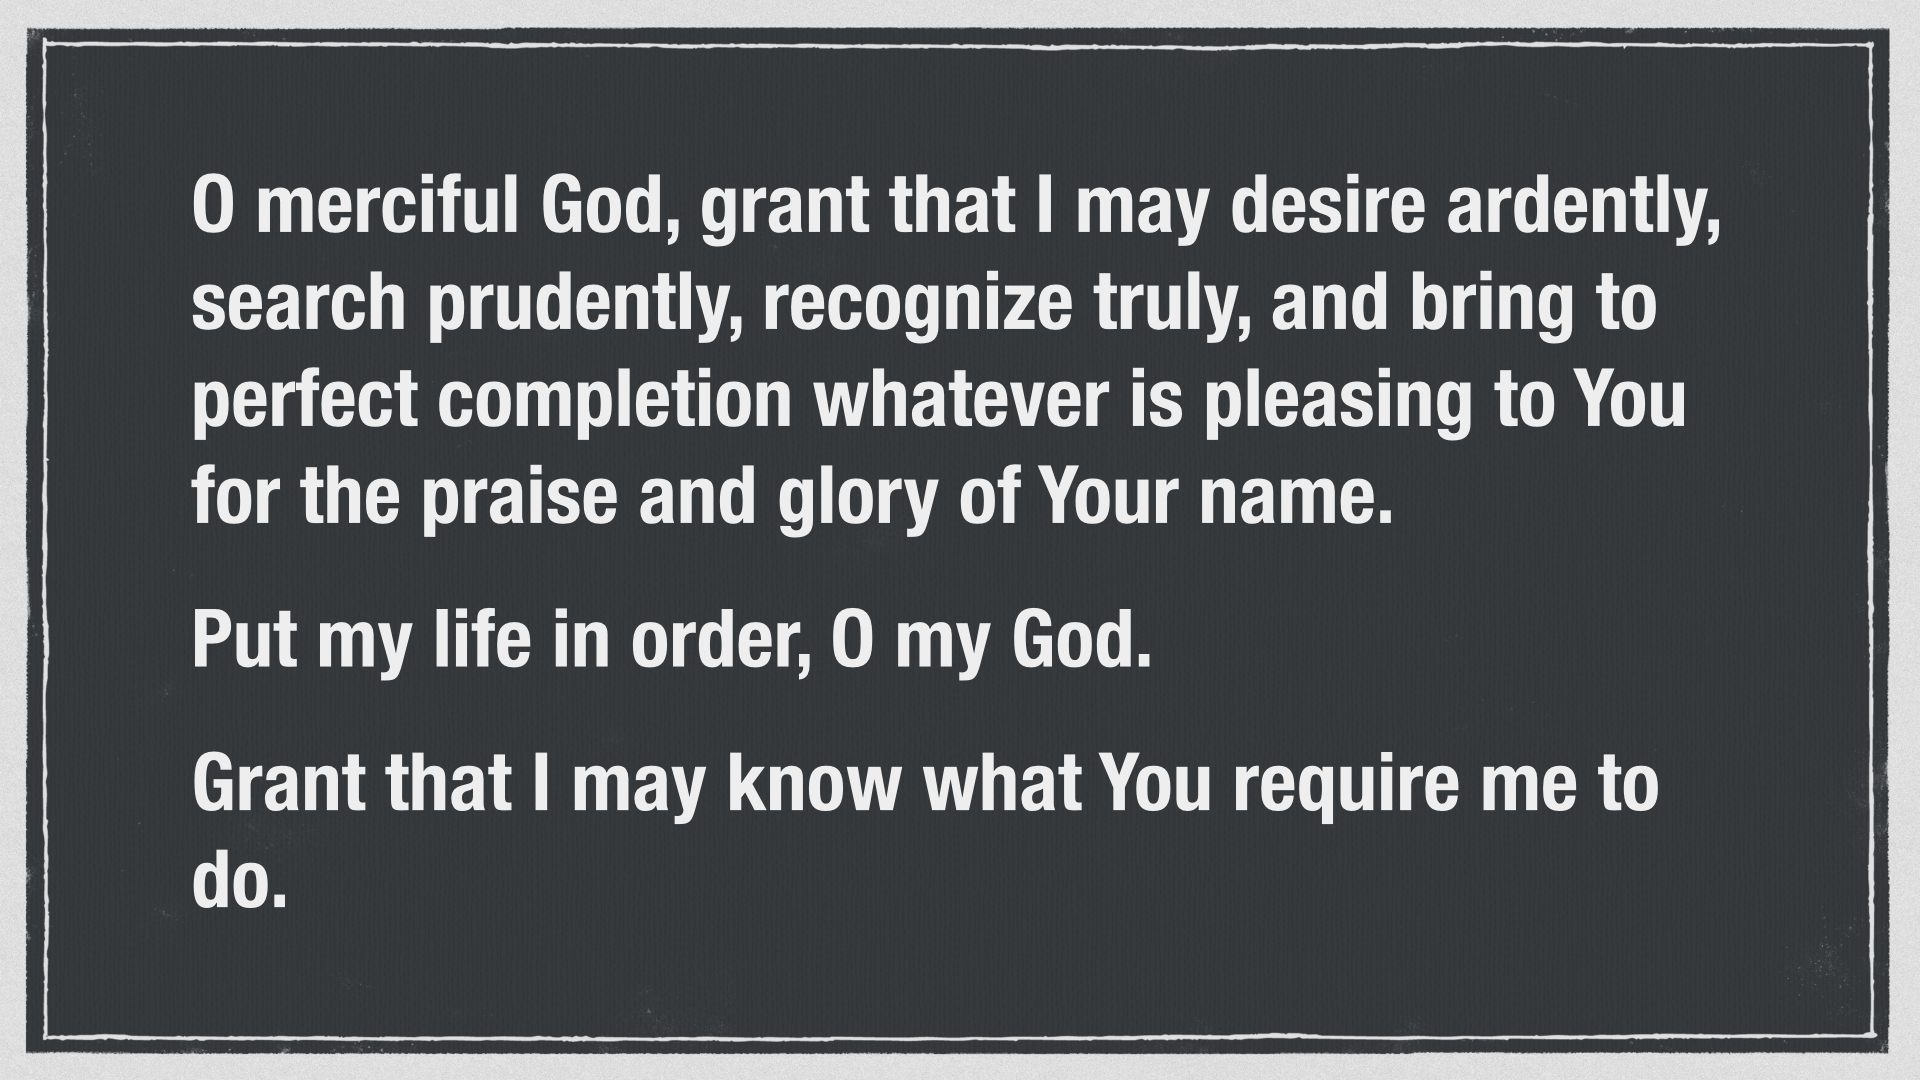 Prayer of St. Thomas Aquinas for ordering life wisely.002.jpg